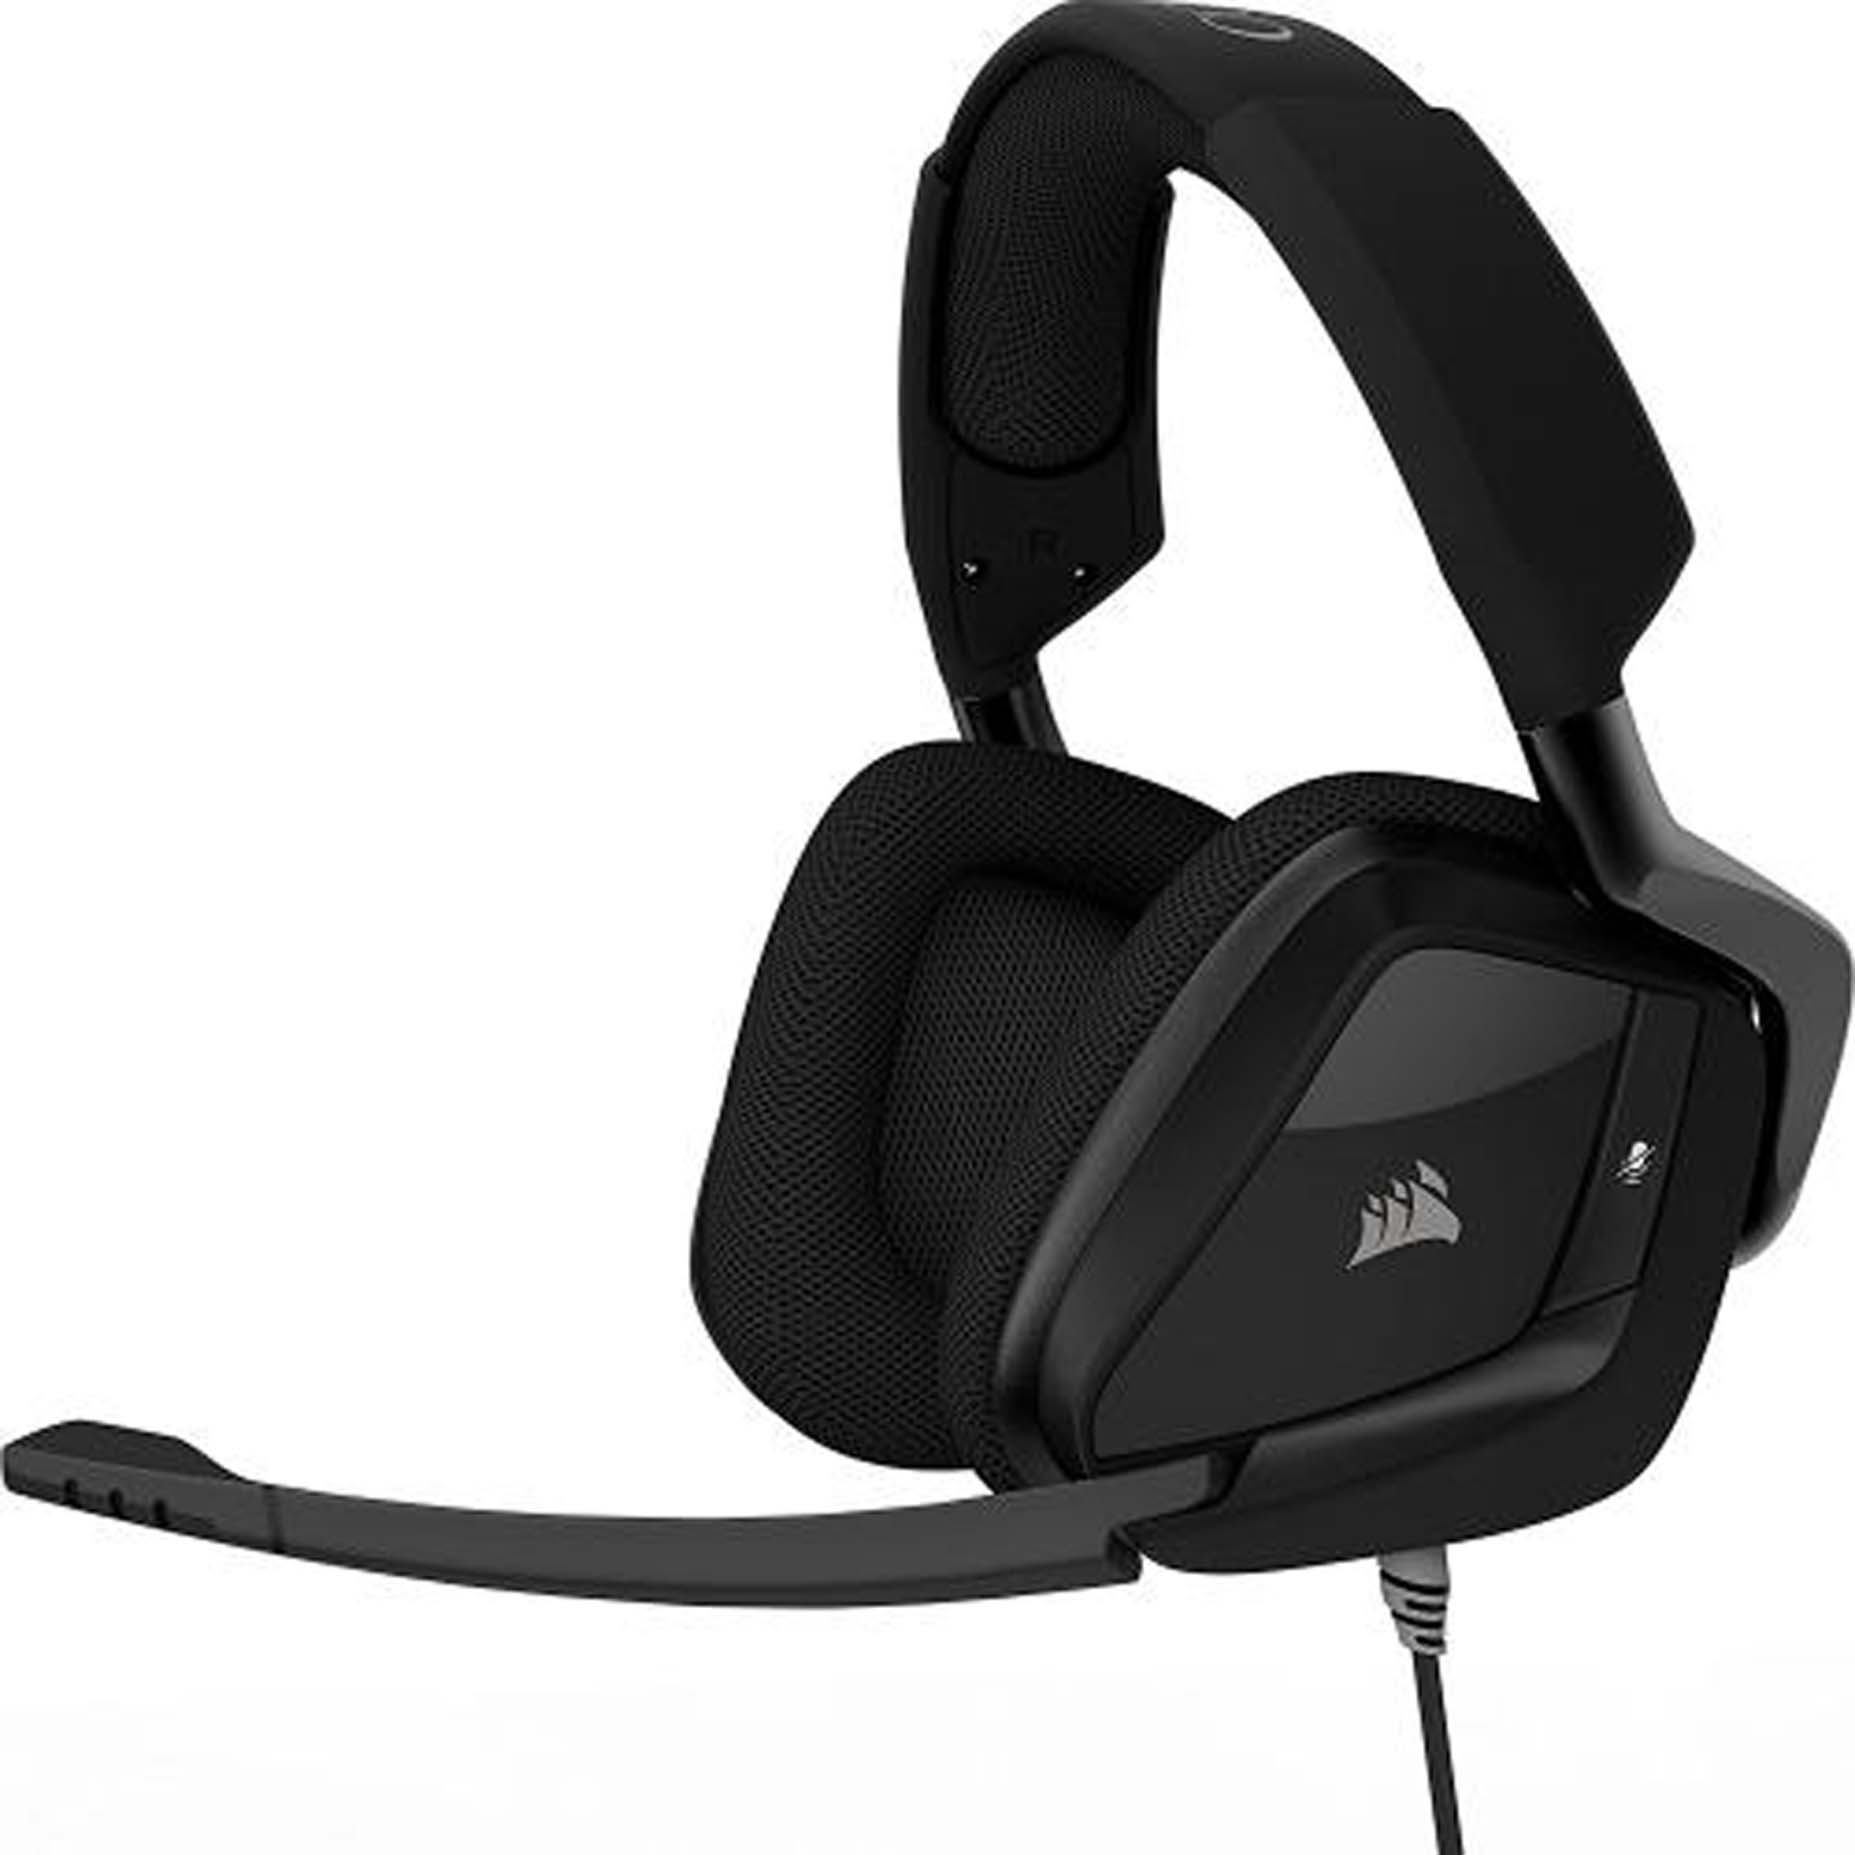 Harga Jual Corsair CA-9011156-NA VOID PRO Surround Premium Gaming Headset with Dolby Headphone 7-1-Carbon